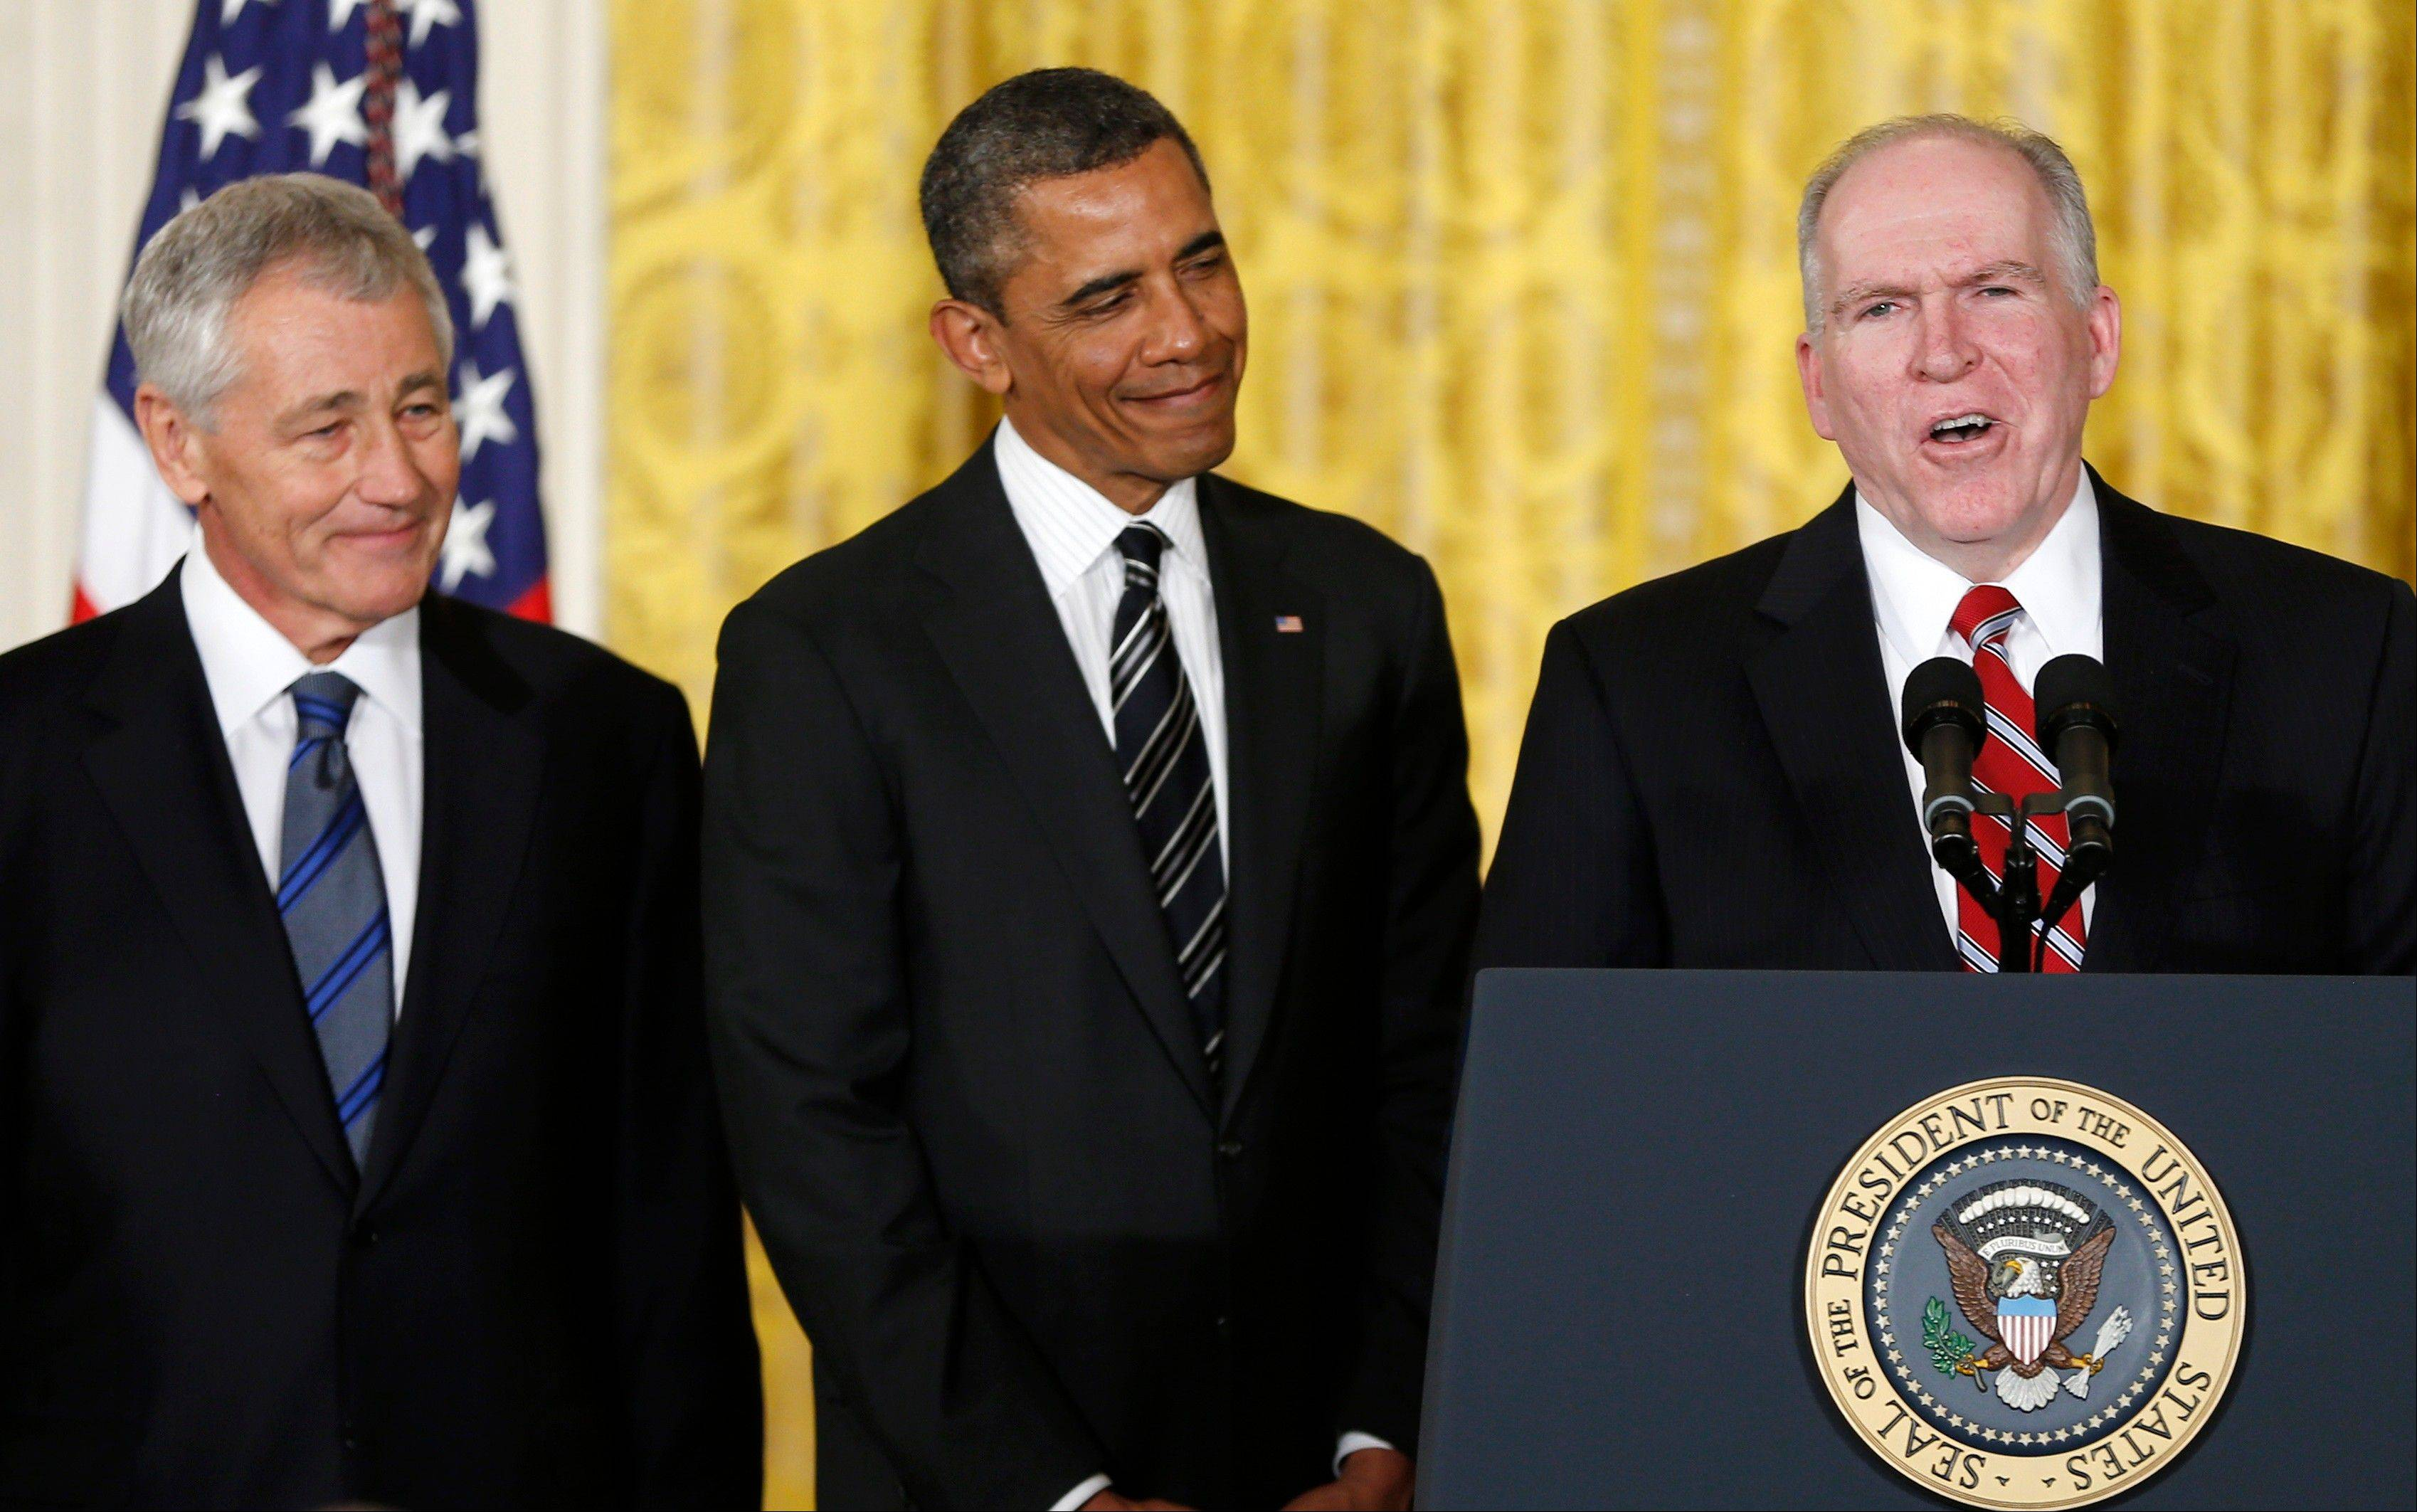 President Barack Obama and his choice for defense secretary, former Nebraska Sen. Chuck Hagel, left, listen as the president�s choice for CIA director, Deputy National Security Adviser for Homeland Security and Counterterrorism, John Brennan, right, speaks at the White House Monday.